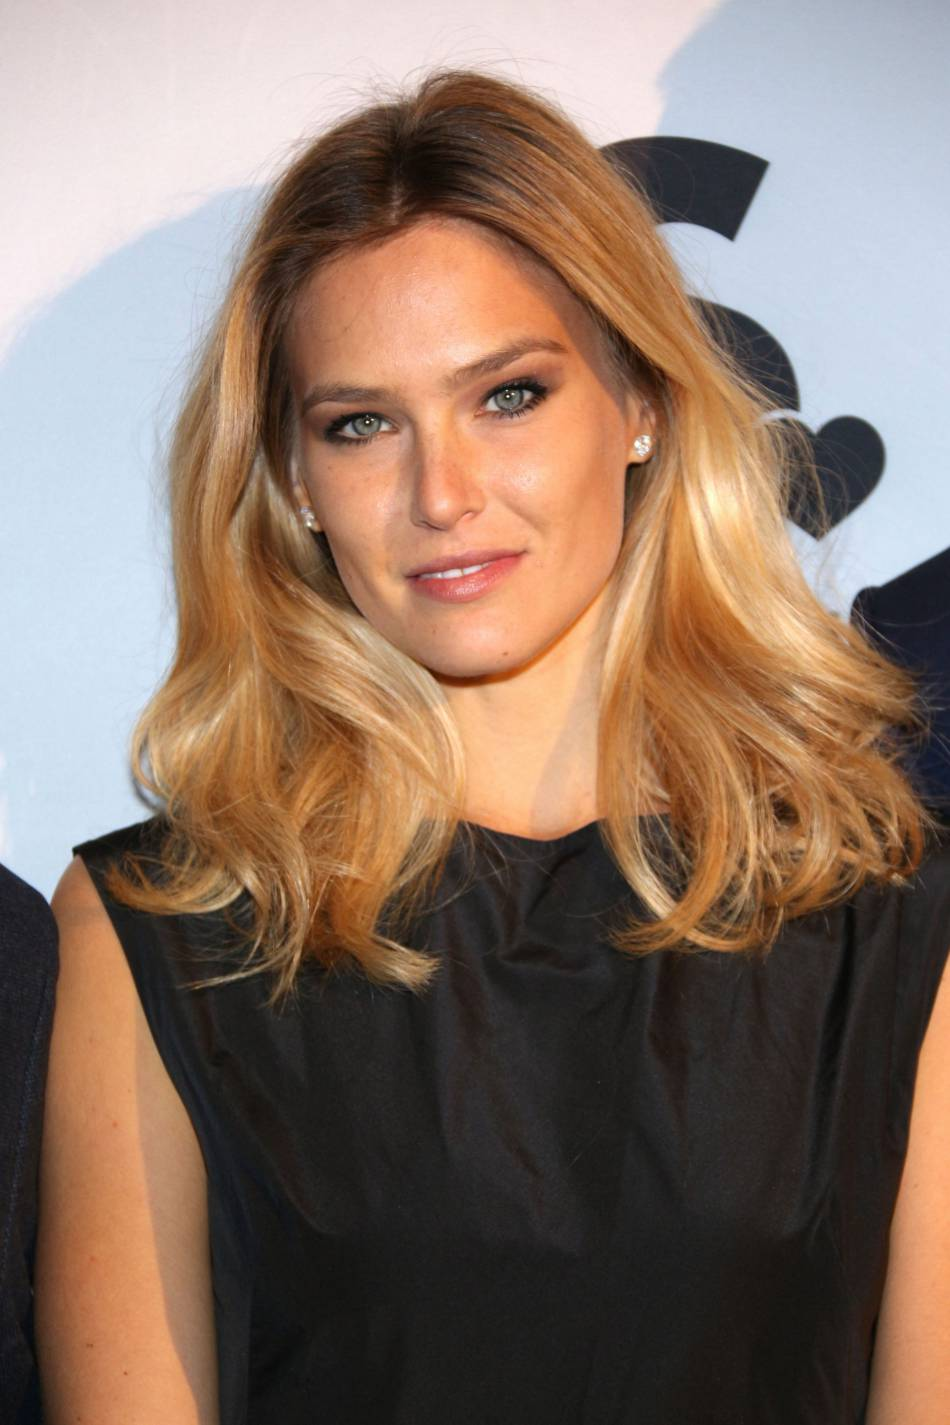 Bar Refaeli : enfant, ... Bar Refaeli